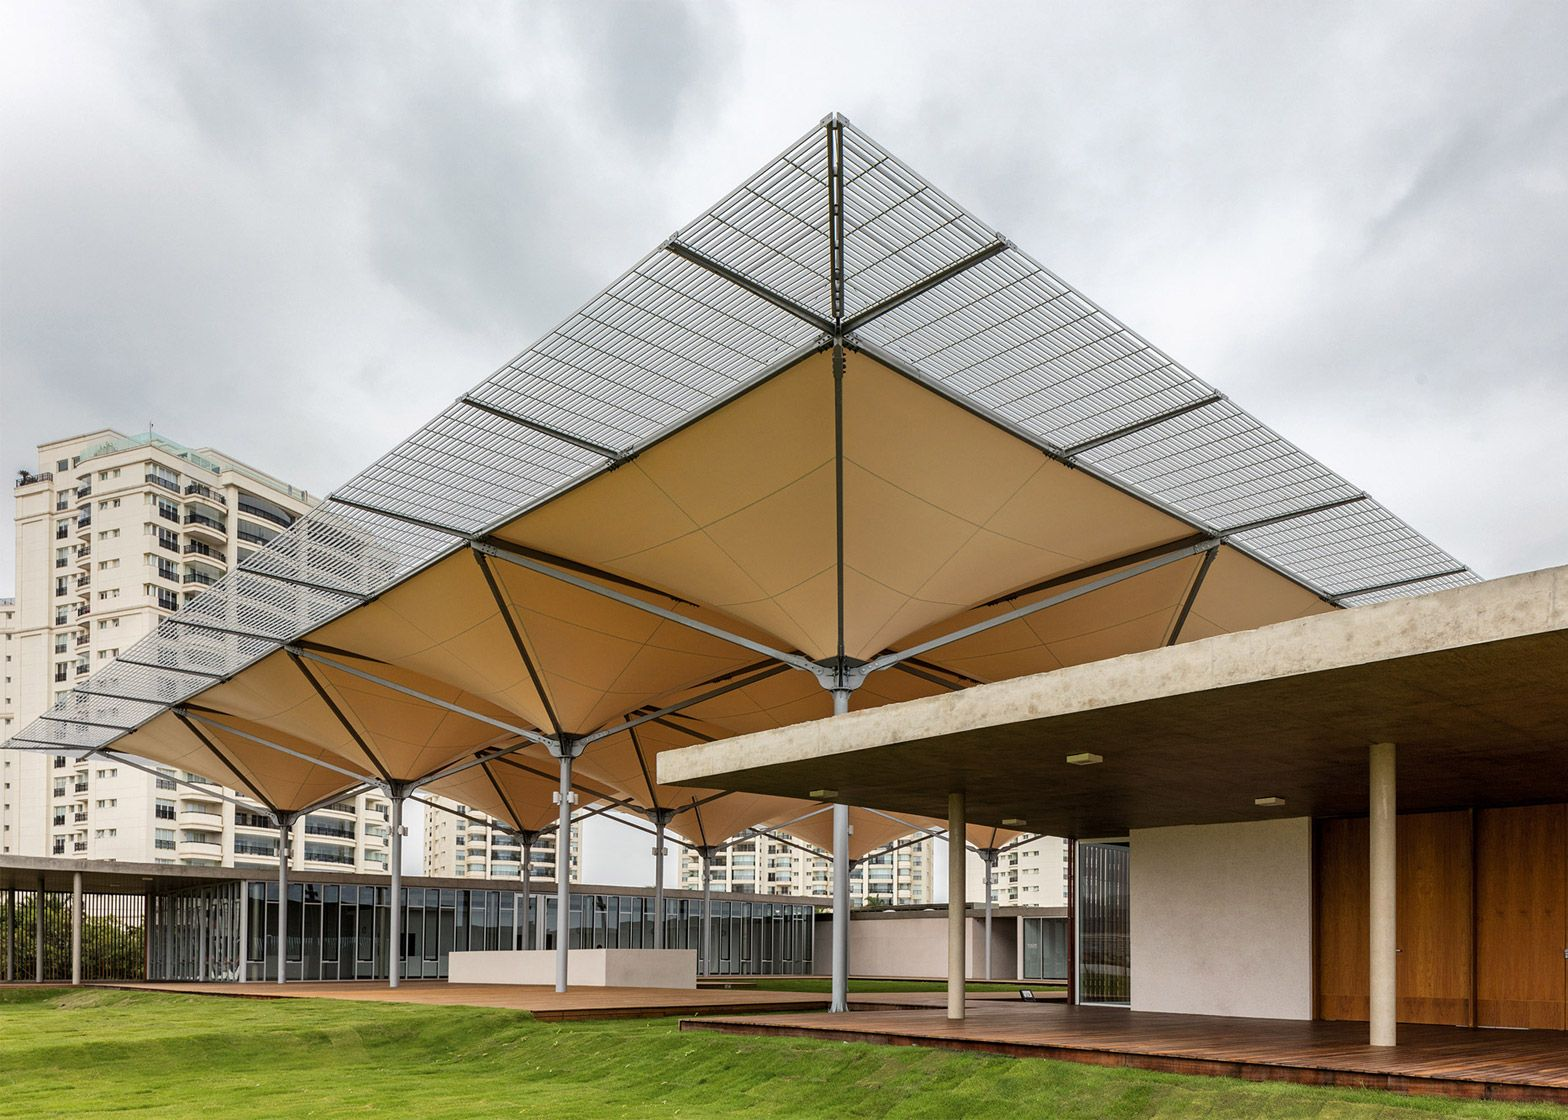 rio 2016 olympic golf course includes rain-collecting canopy